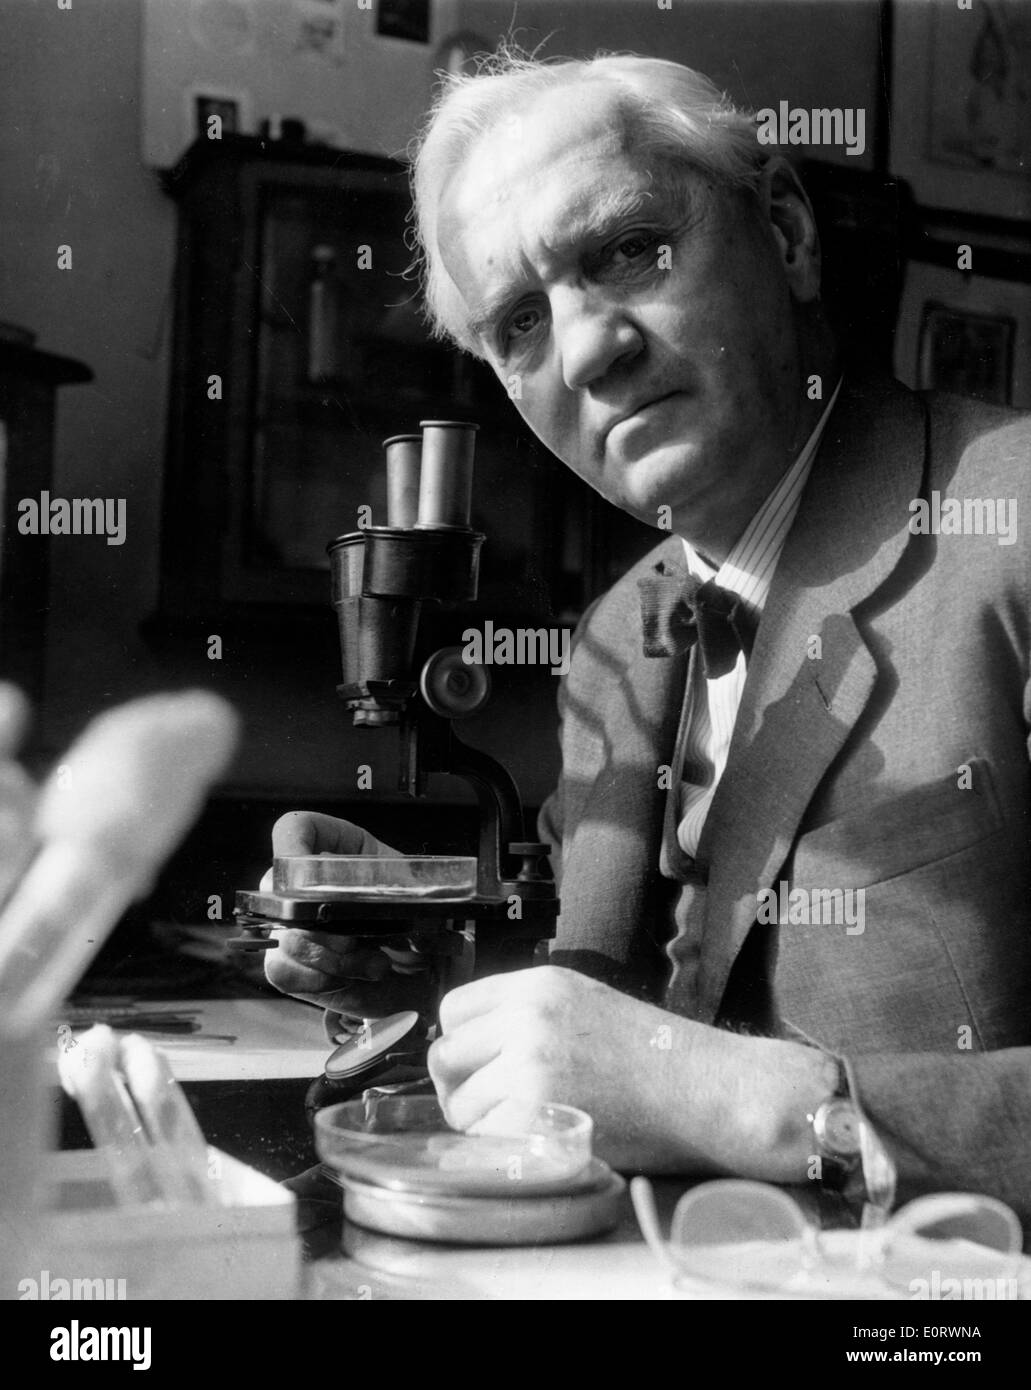 Alexander Fleming biologiste travaille dans son laboratoire Photo Stock